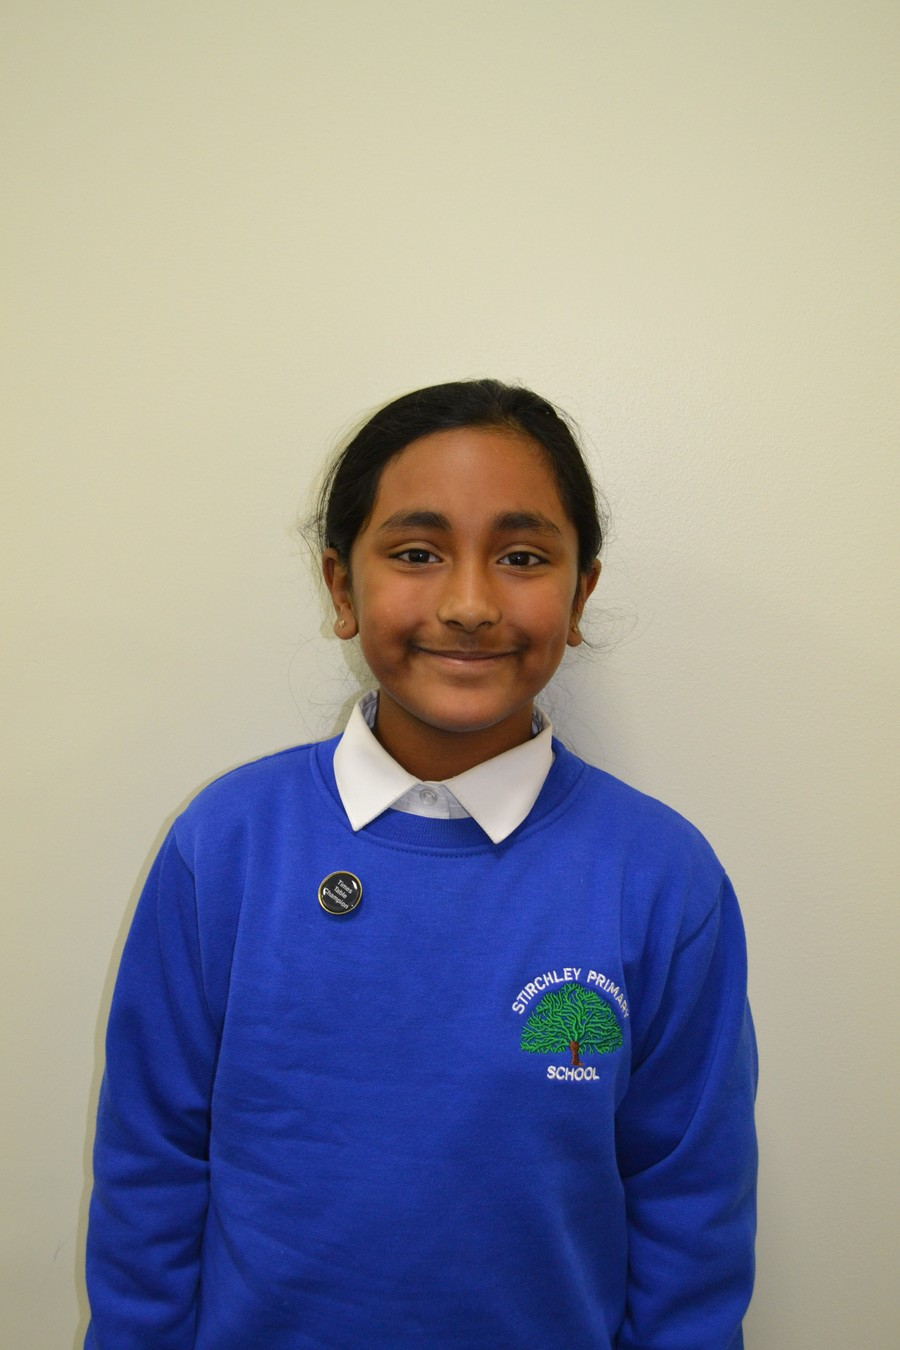 Well done Isha!